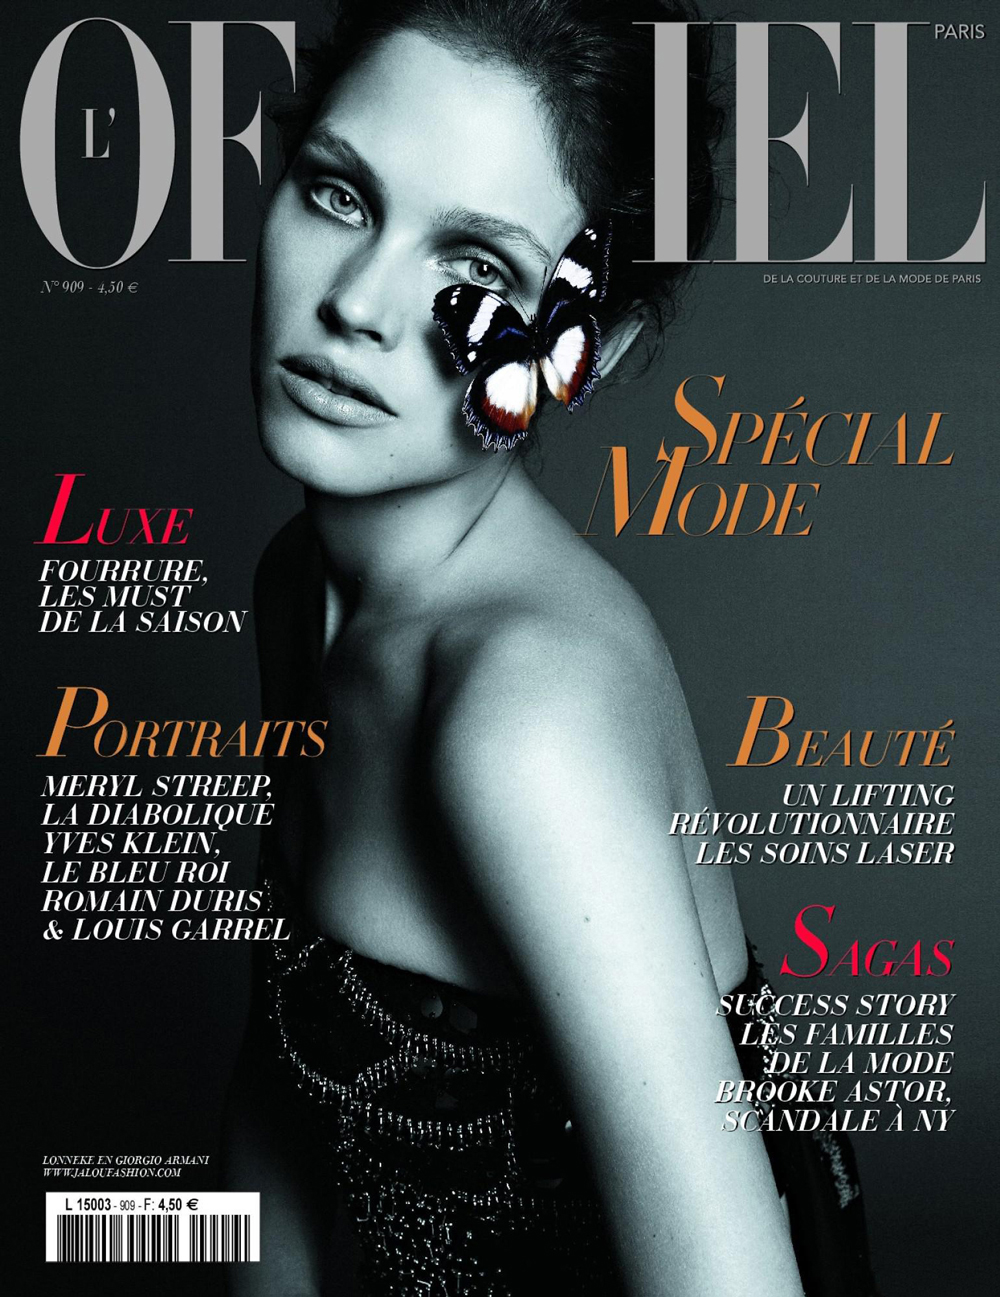 Lonneke Engel wearing Giorgio Armani for L'Officiel France October 2006 / exclusive interview with Lonneke Engel / fashion models beauty secrets / via fashioned by love british fashion blog